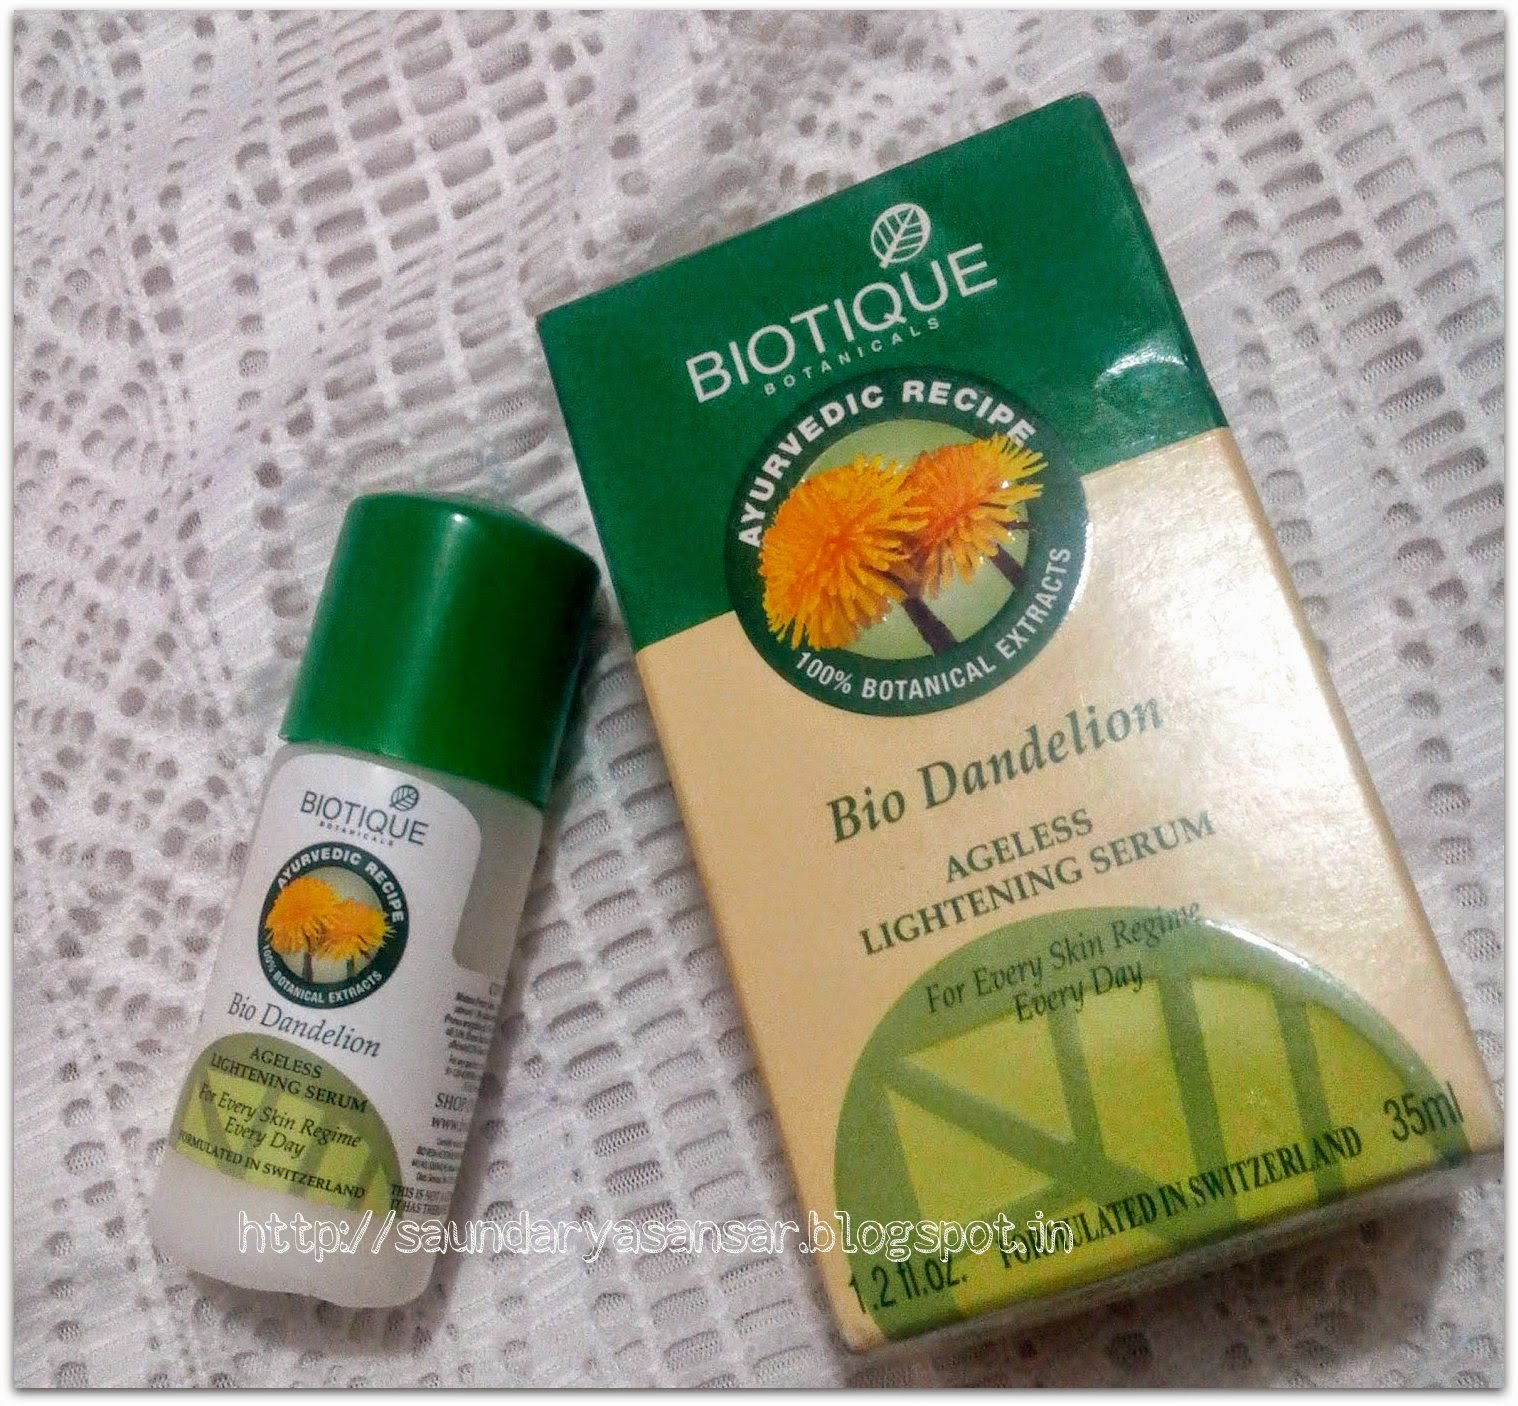 Biotique Botanicals Bio Dandelion Ageless Lightening Serum Review